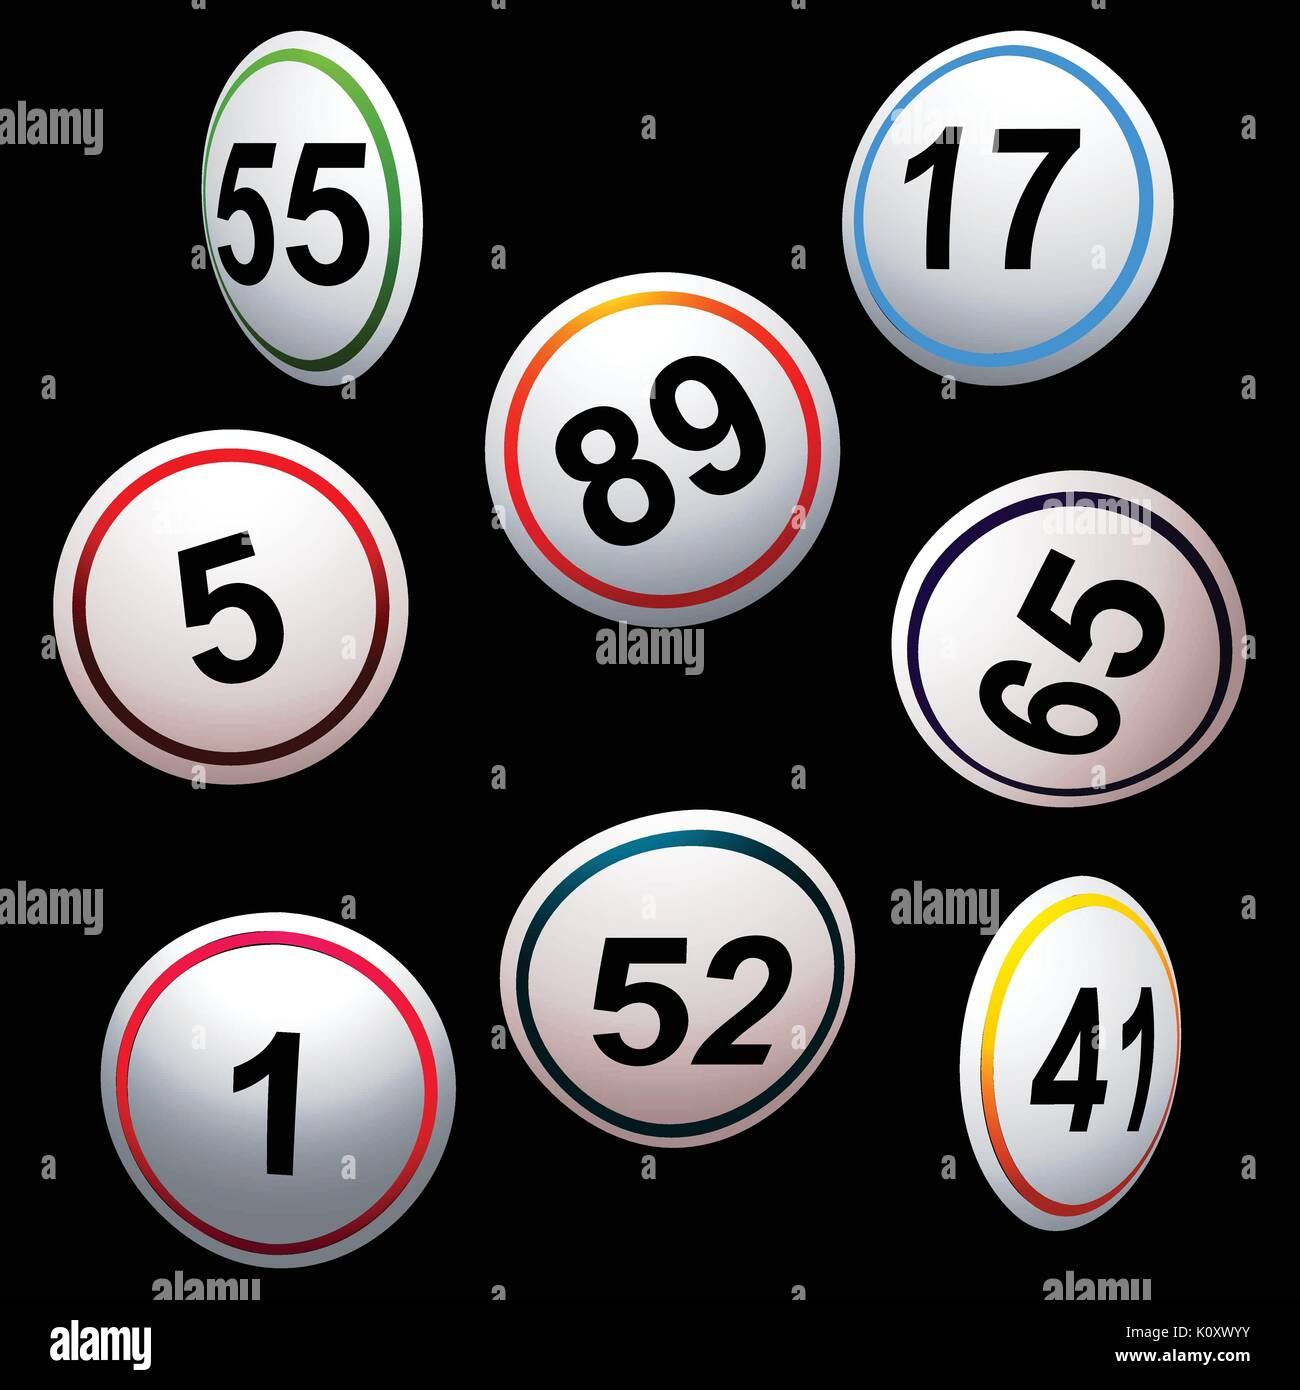 3D Illustration of Curved Bingo Lottery Numbers in Different